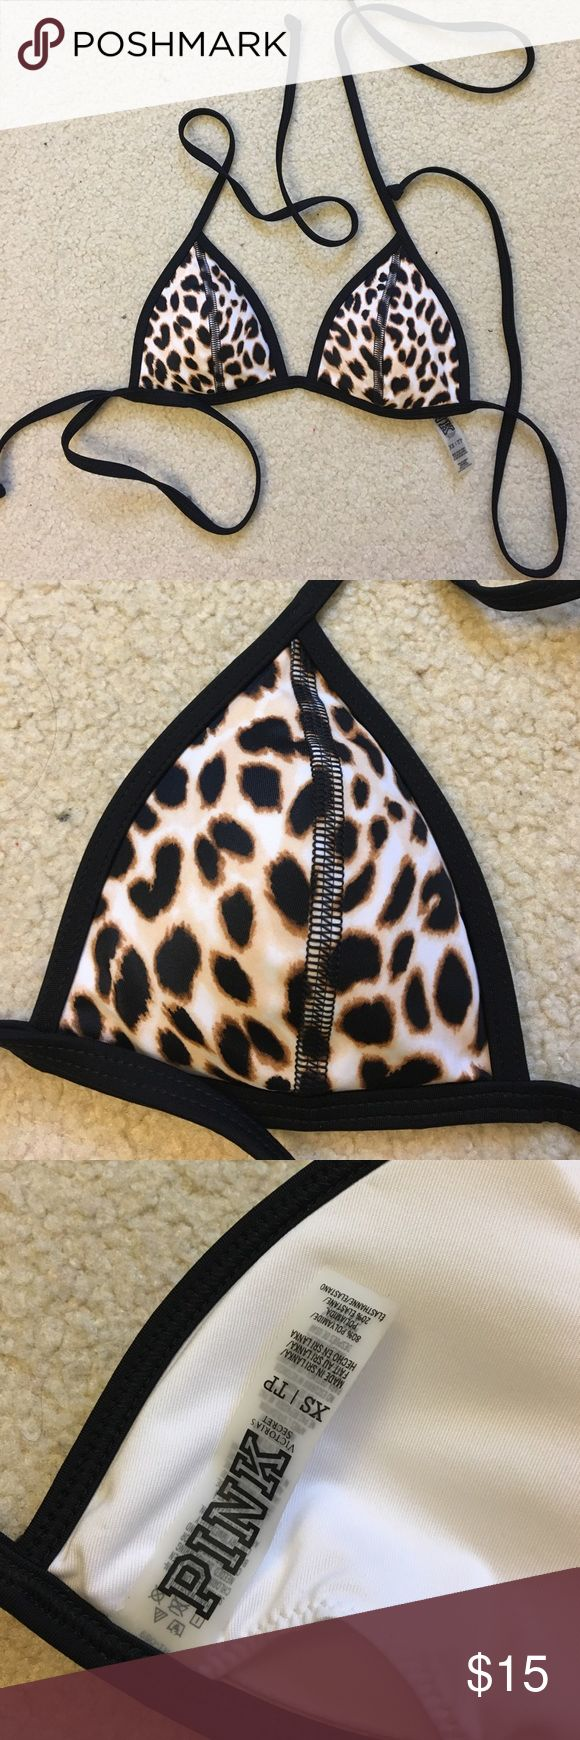 VICTORIAS SECRET PINK TRIANGLE BIKINI TOP VS Pink Cheetah Print Triangle Bikini Top | Size XS | Removable pads | Tie around on top & side (see photos) | Worn once, like new! PINK Victoria's Secret Swim Bikinis